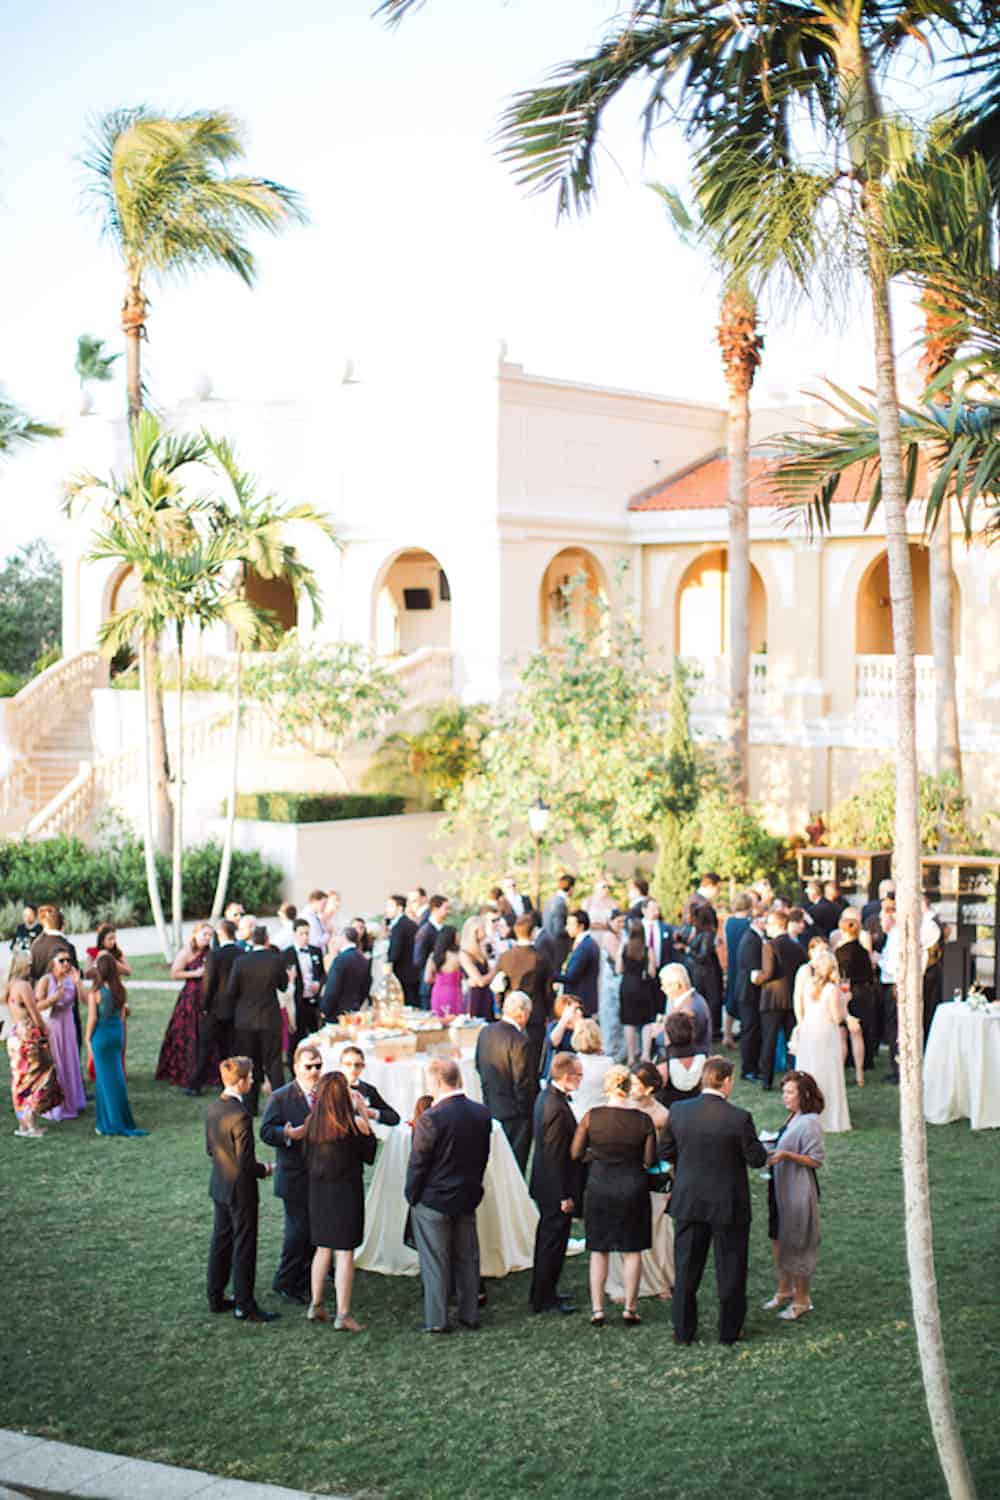 21 Smith_Sikes_HunterRyanPhoto_ritzcarltonsarasotafloridadestinationweddinghunterryanphoto1608_low